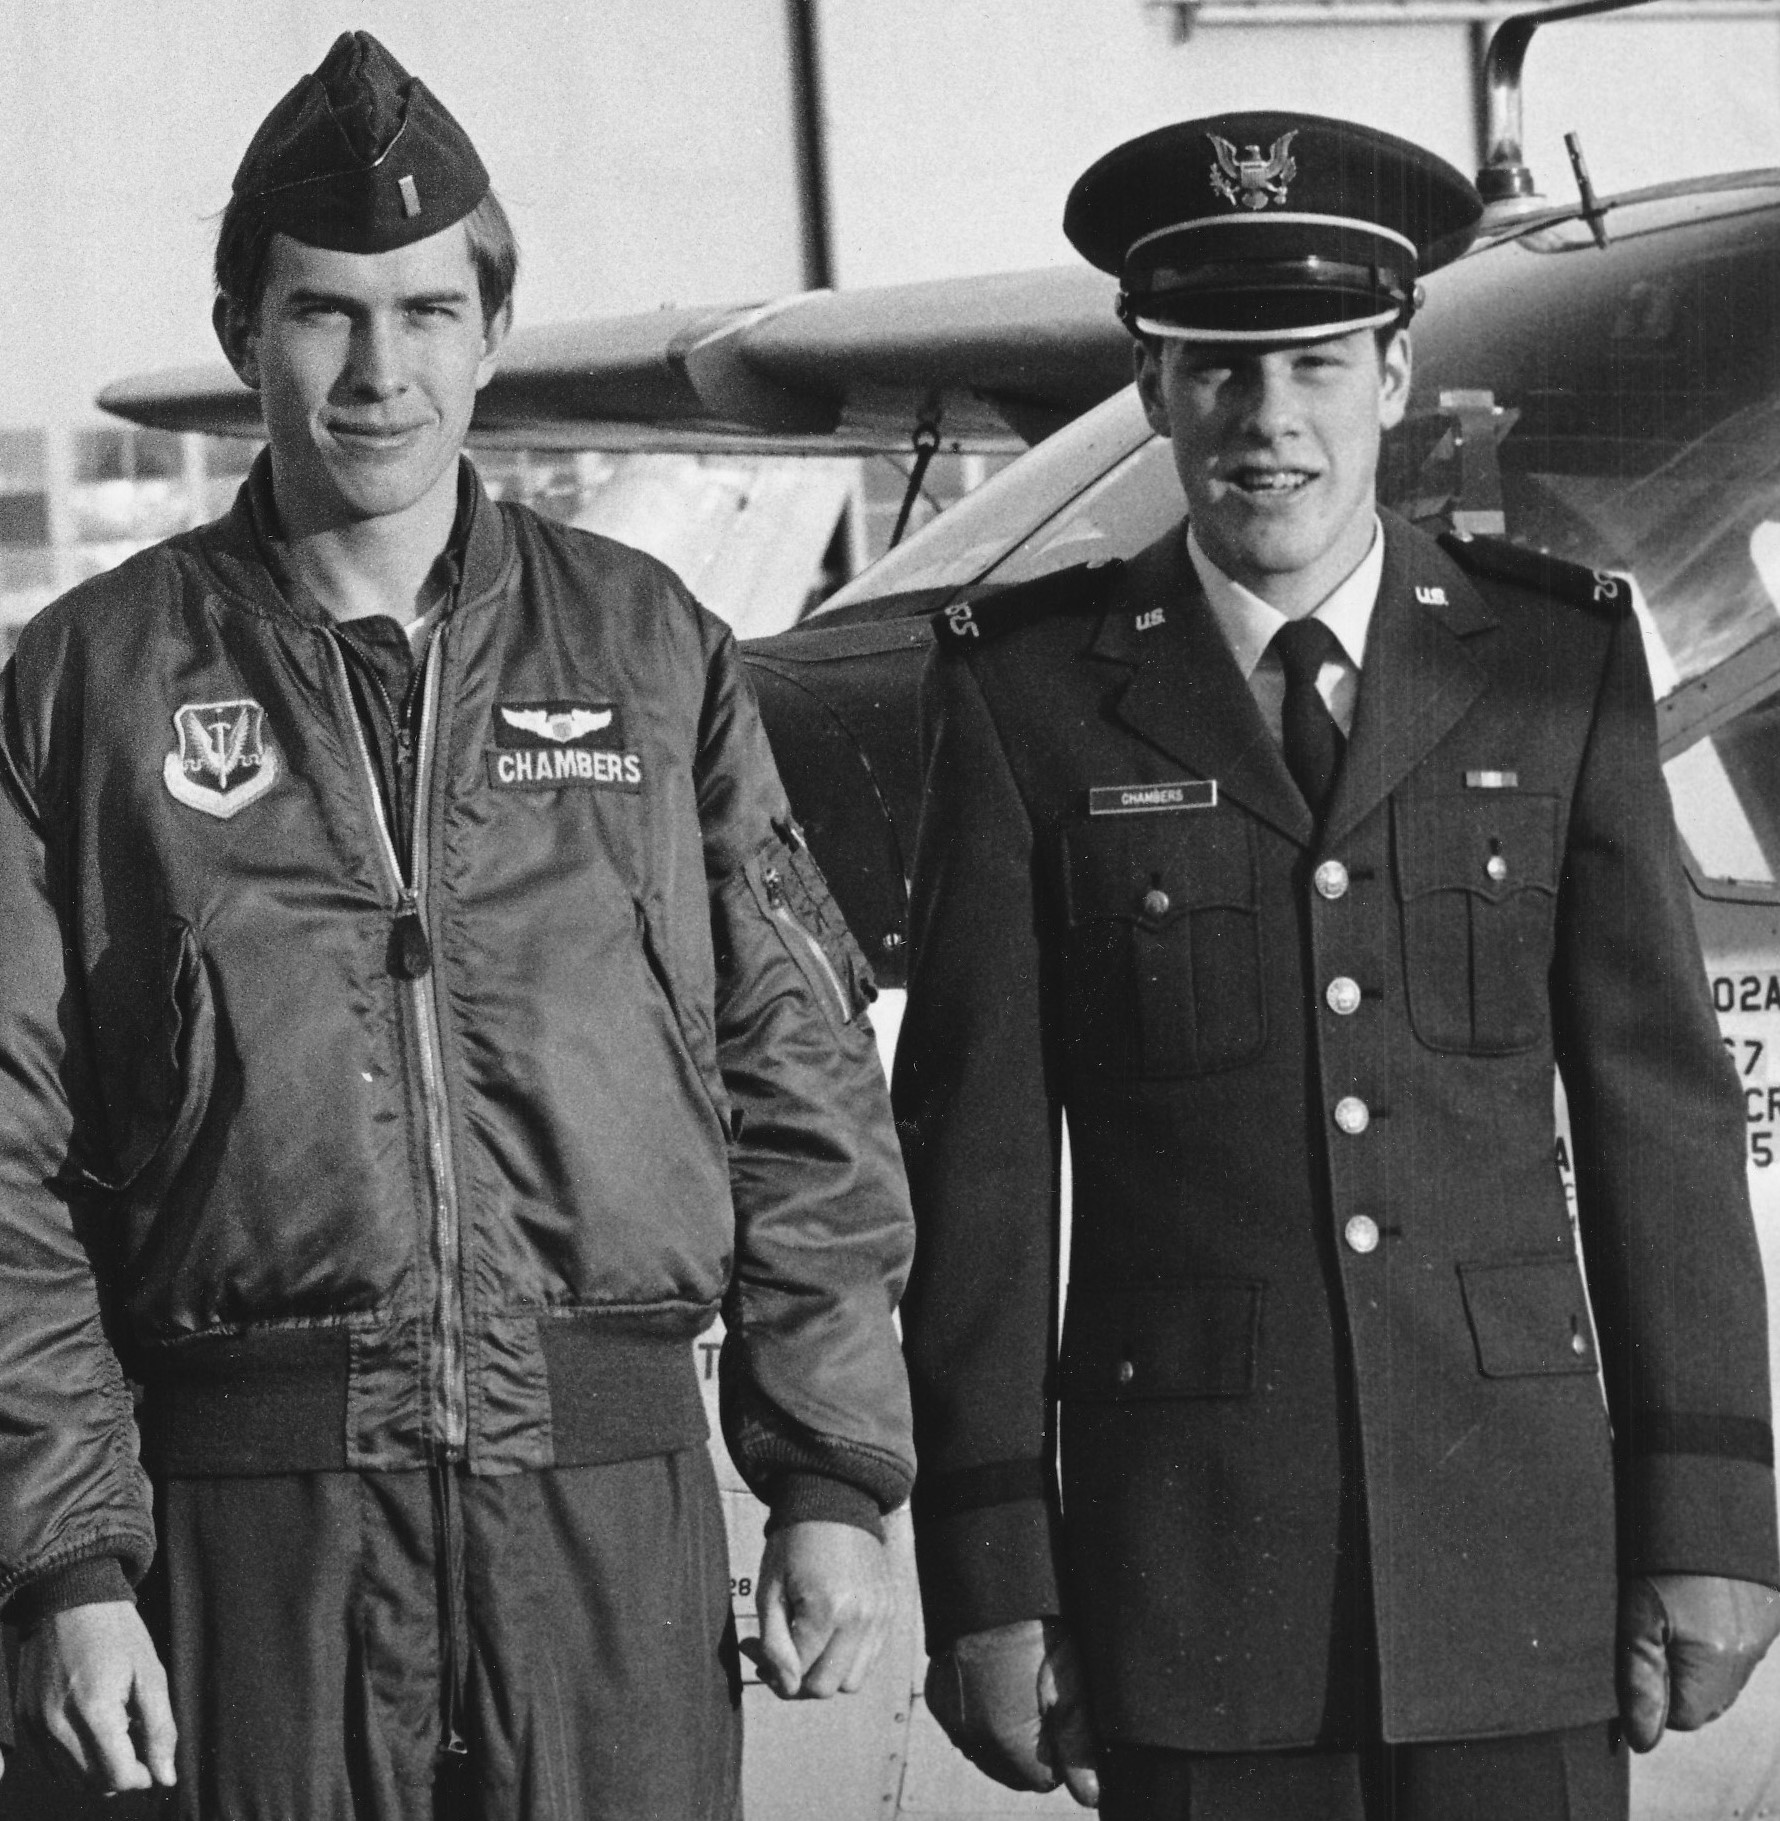 Standing tall and handsome, we see Colonel Robert Chambers in Air National Guard uniform.